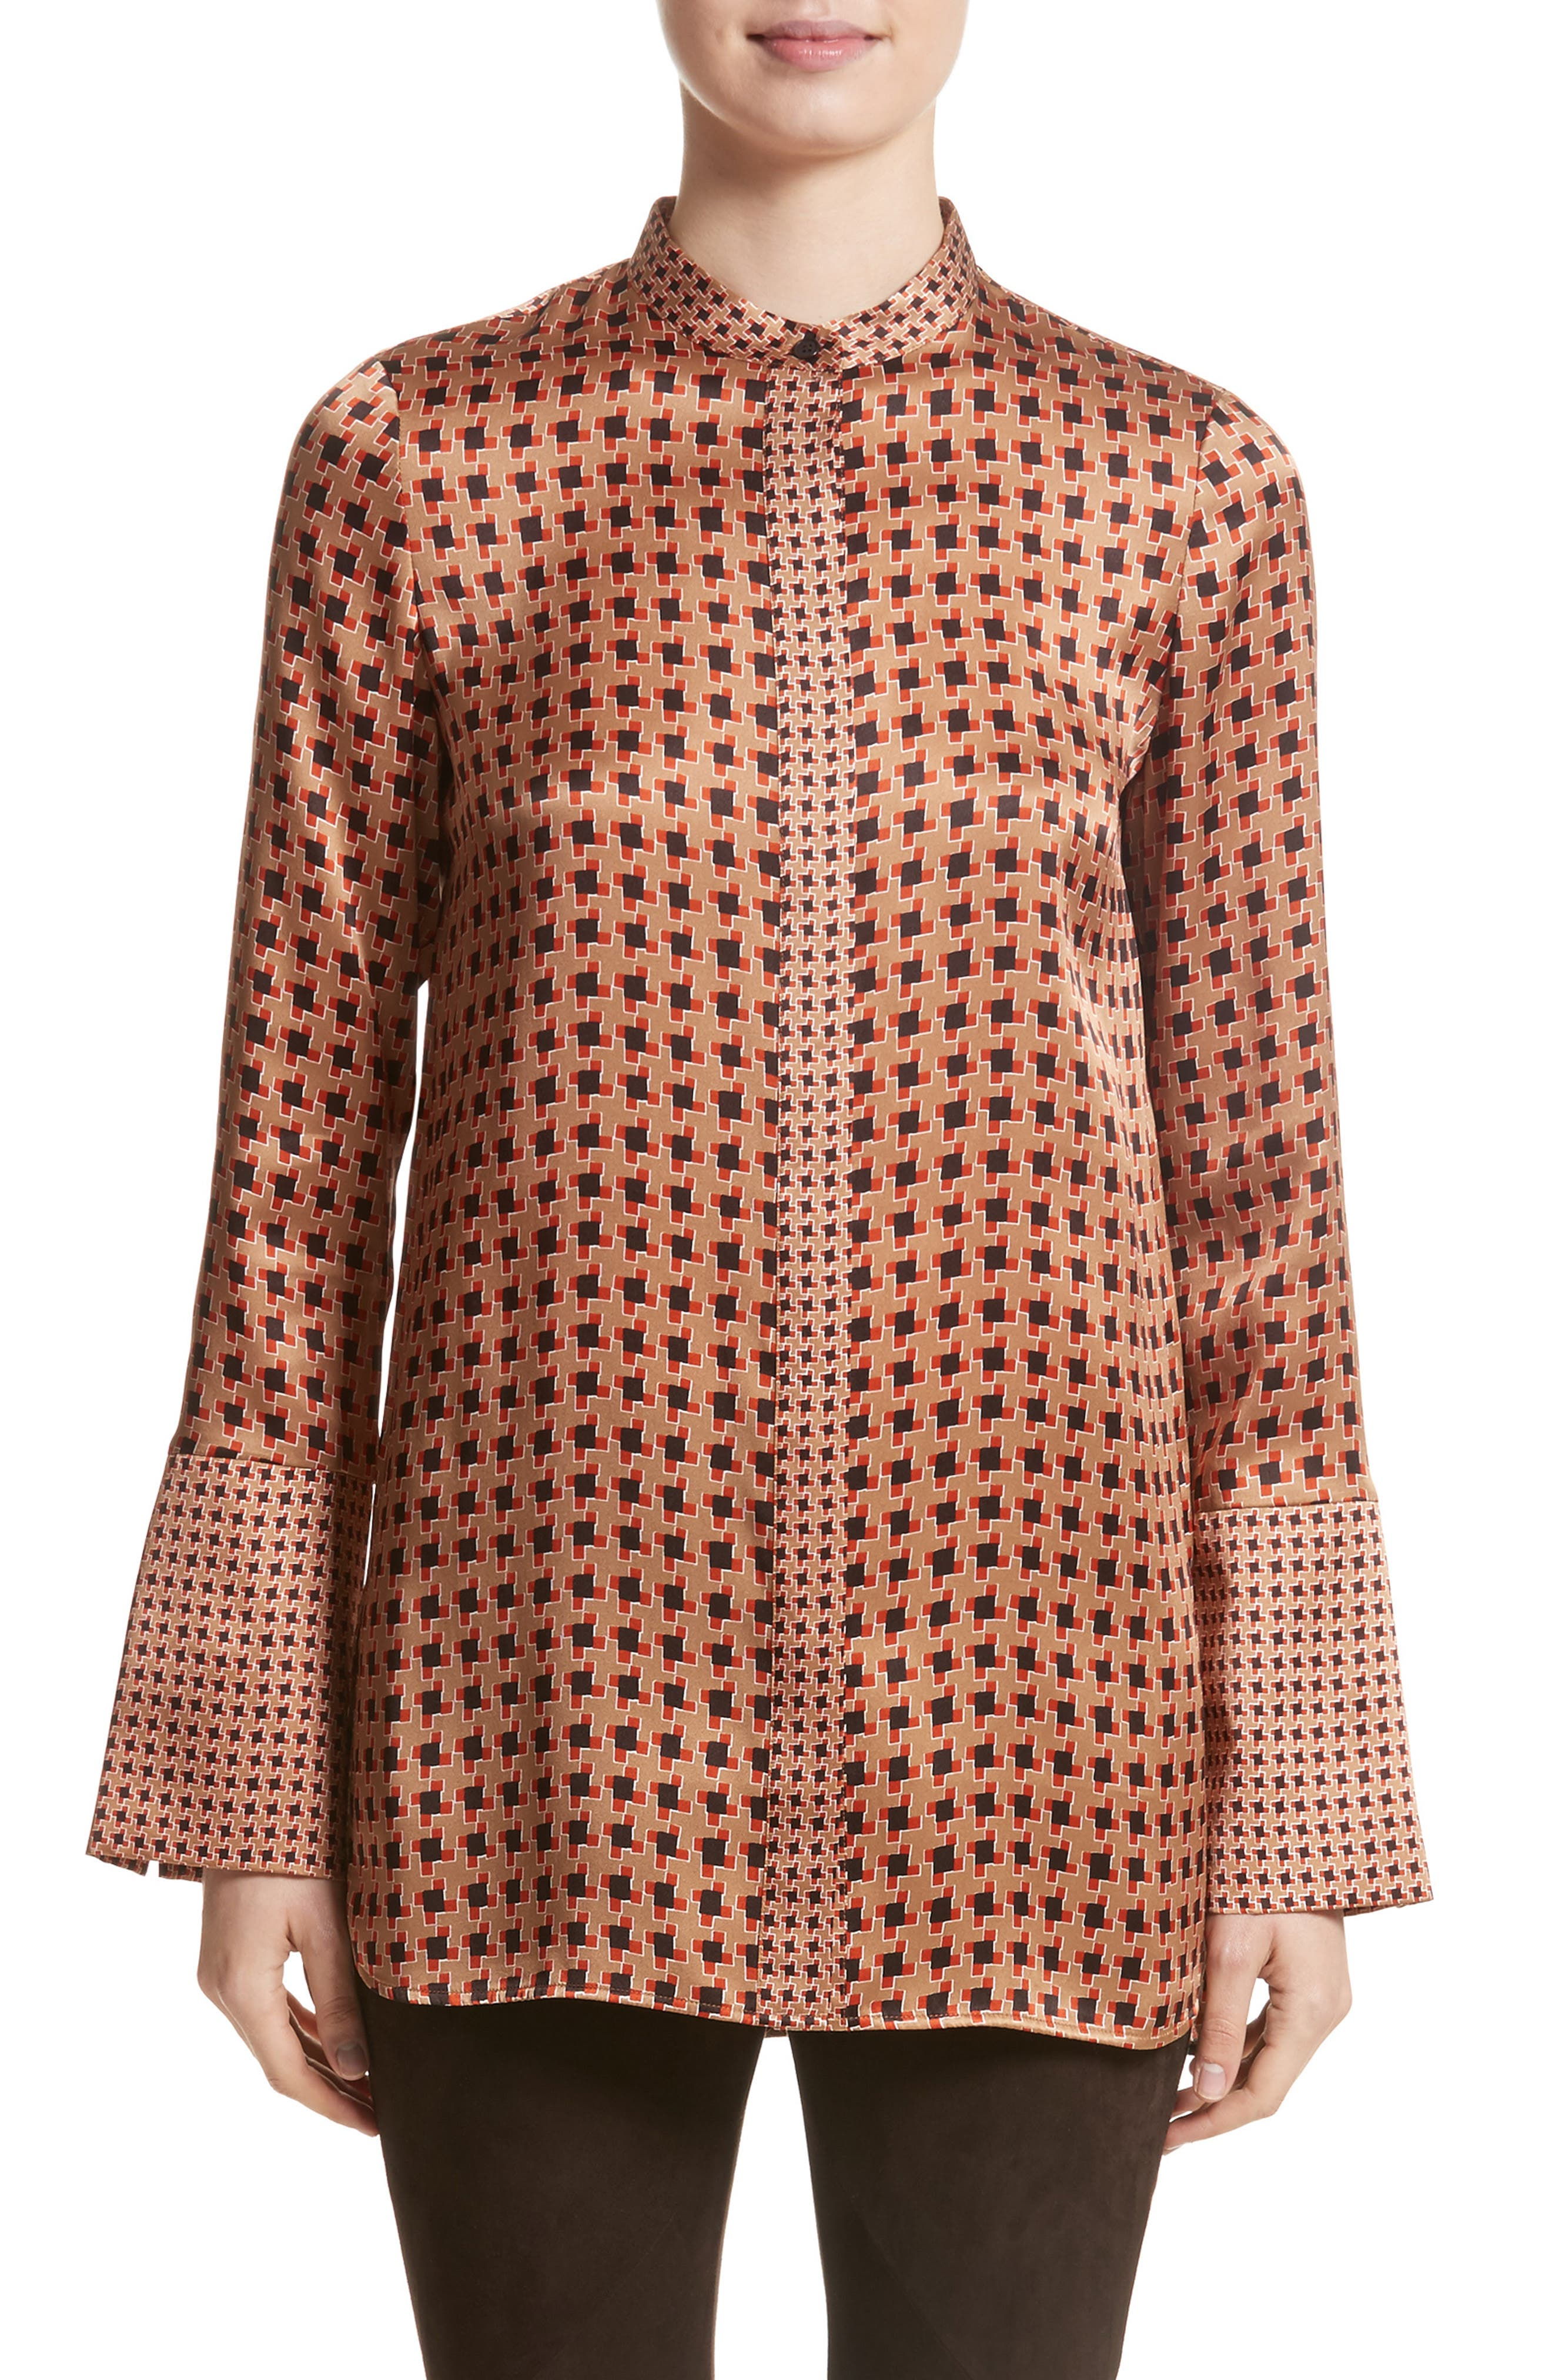 Desra Highgate Houndstooth Silk Tunic,                             Main thumbnail 1, color,                             Camel Multi